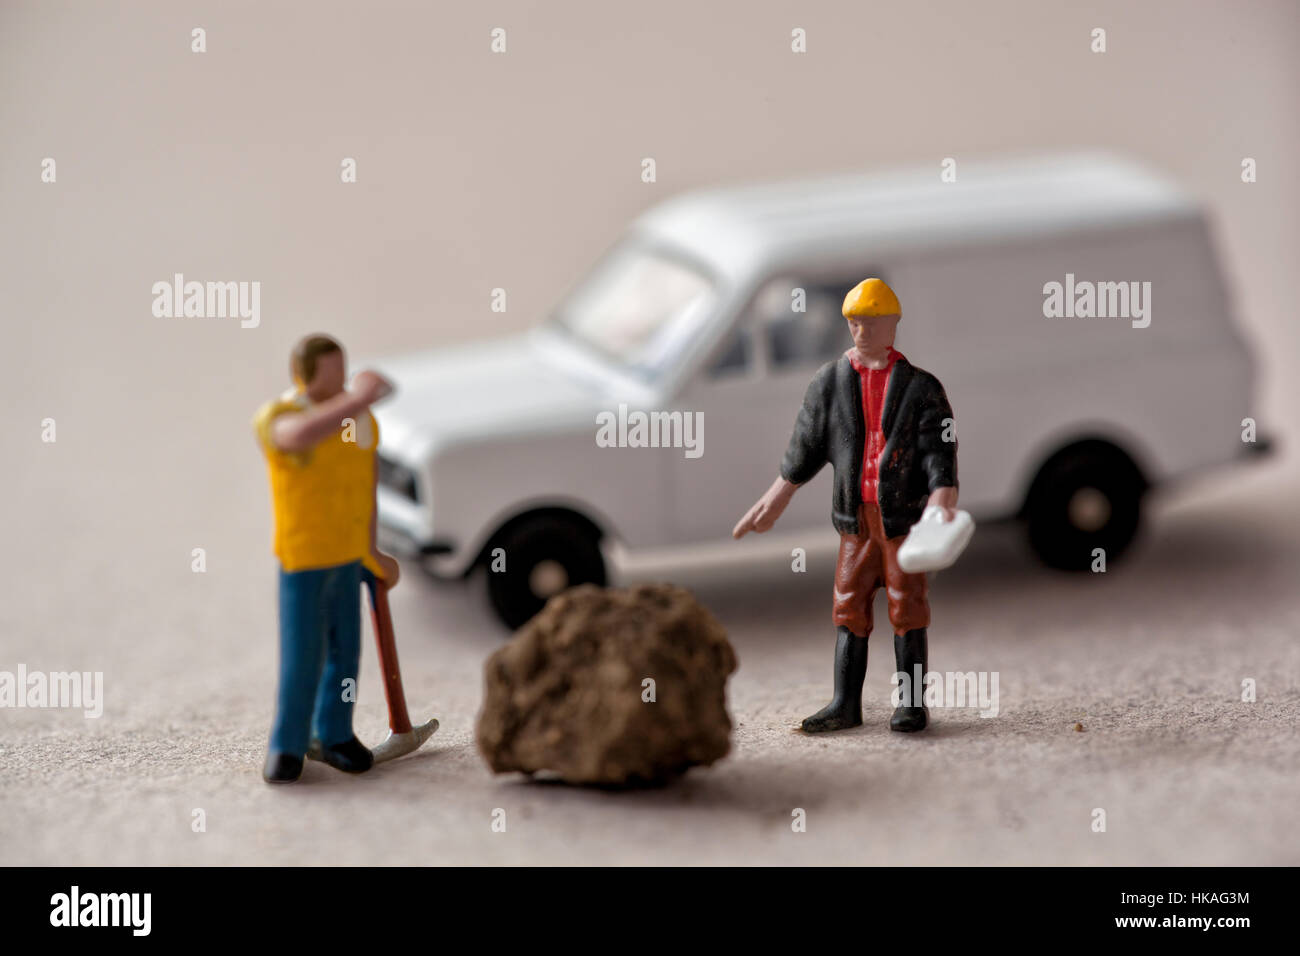 Miniature model supervisor and workman with a lump of earth and white van - Stock Image